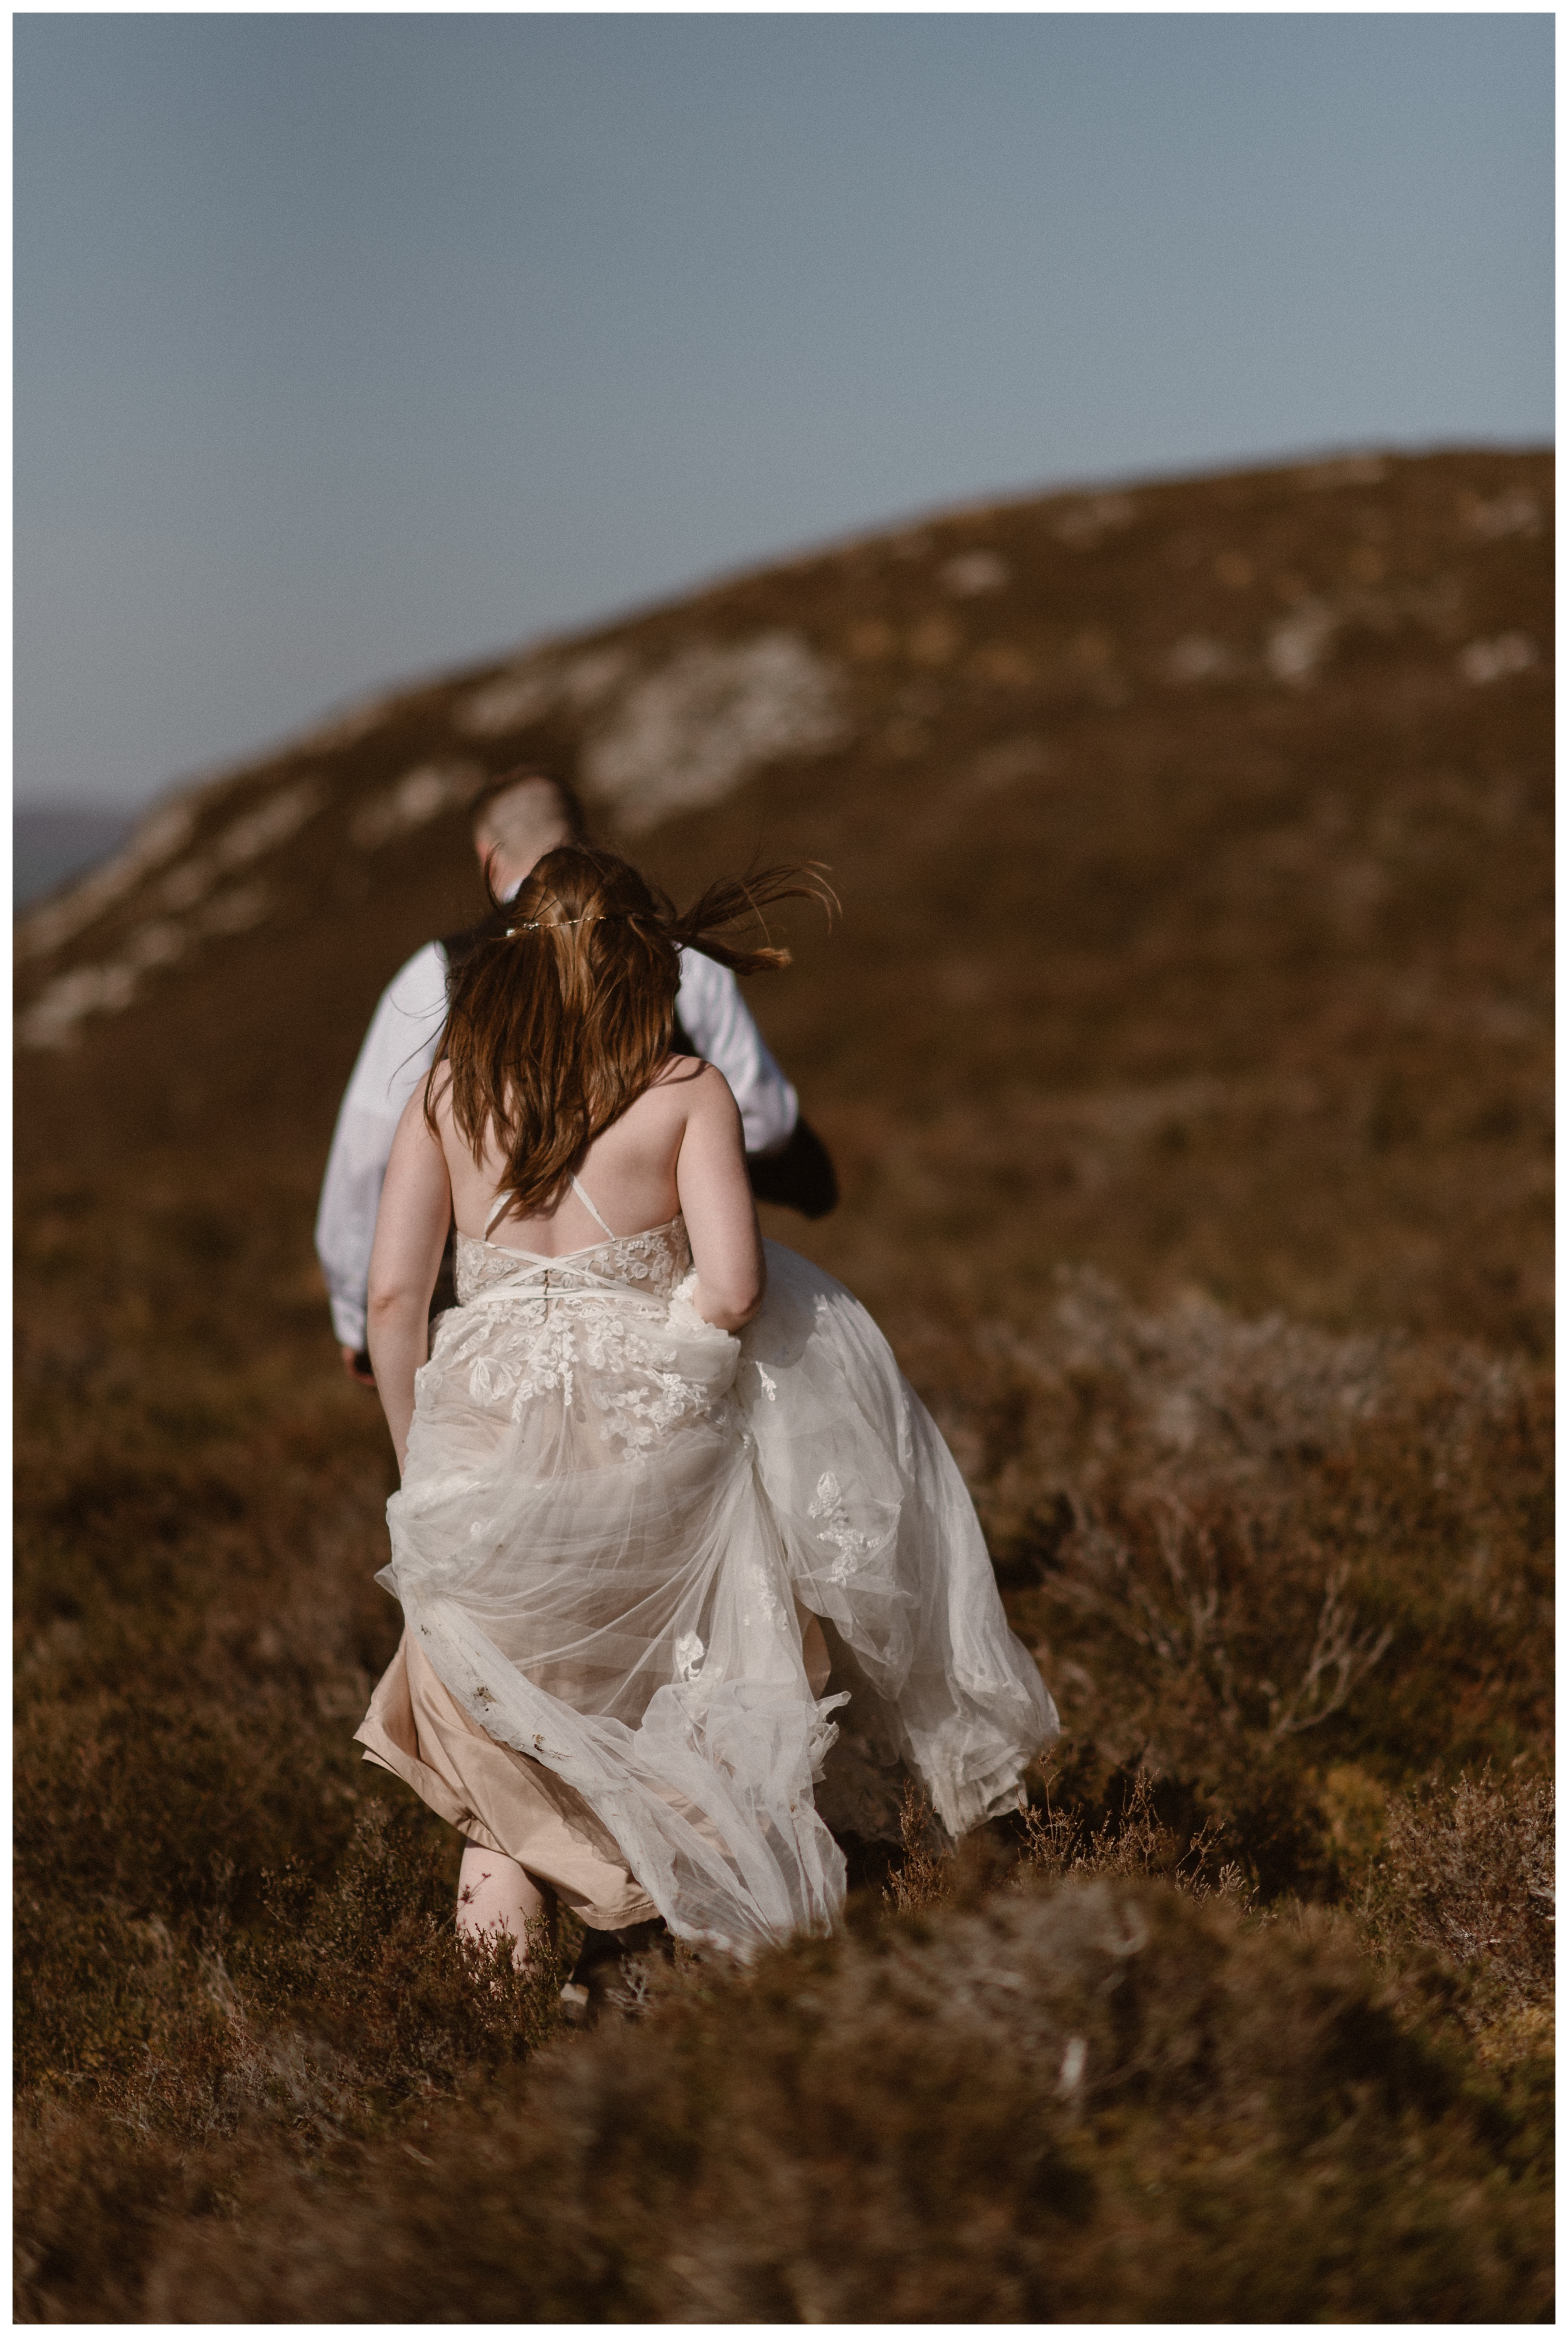 Elissa and Daniel love to explore and adventure together so it made sense for them to plan a destination elopement ceremony to a place they had never been, Scotland. Photo by Maddie Mae, Adventure Instead.